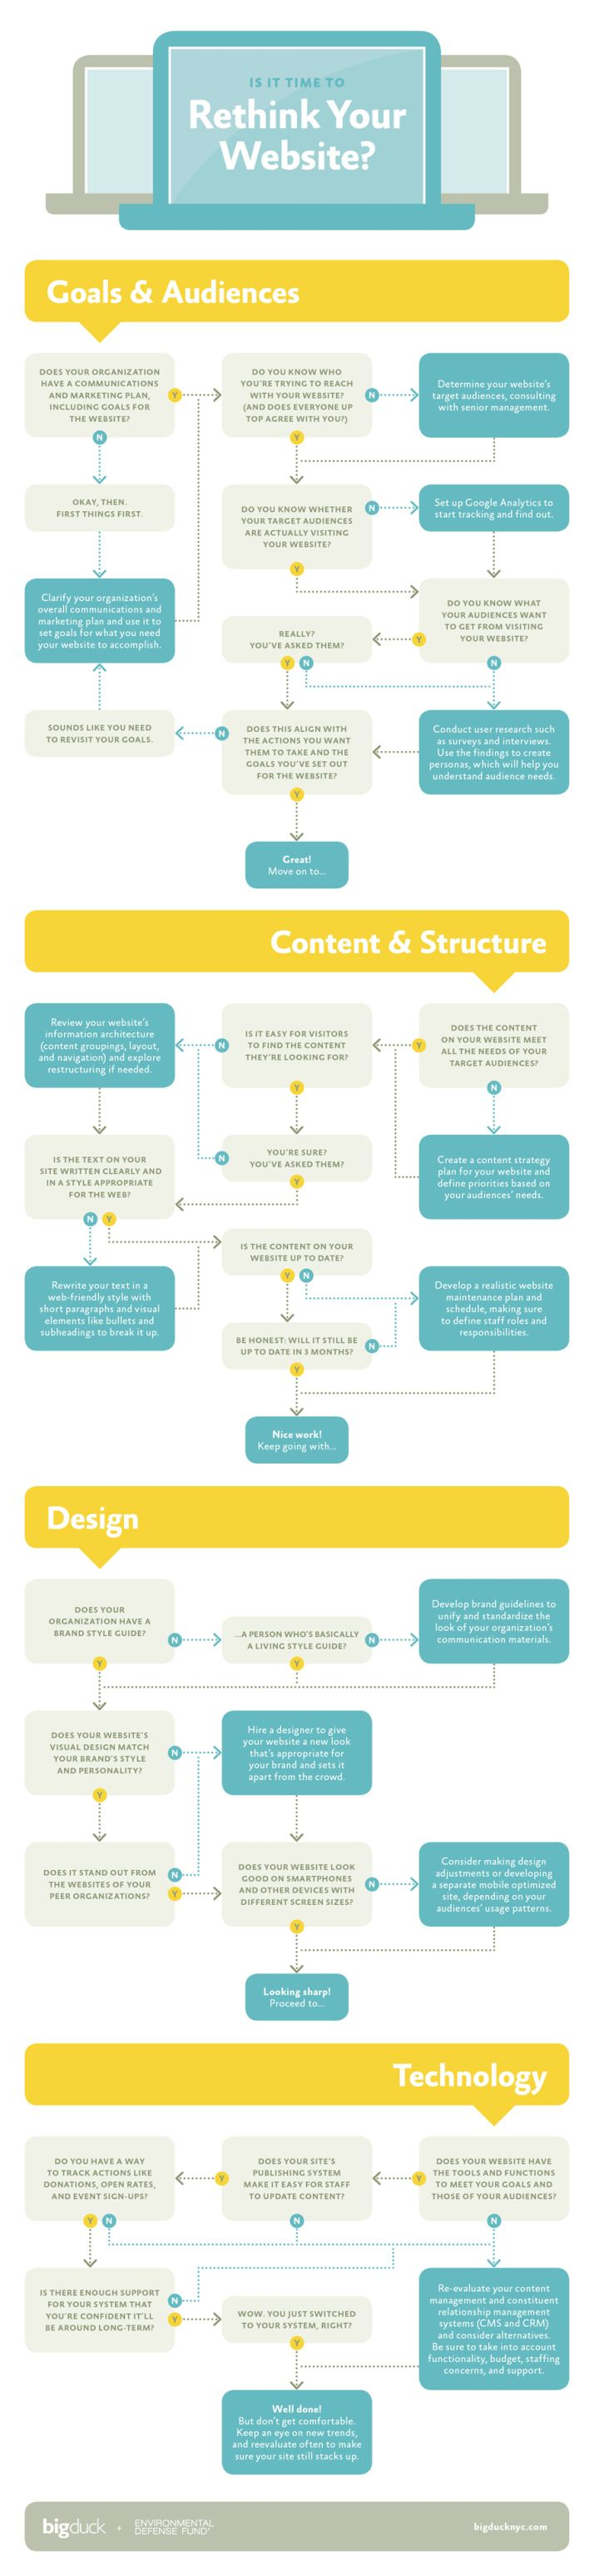 Is it time to rethink your website? [infographic] Internet Marketing Infographics courtesy #PurposeAdvertising